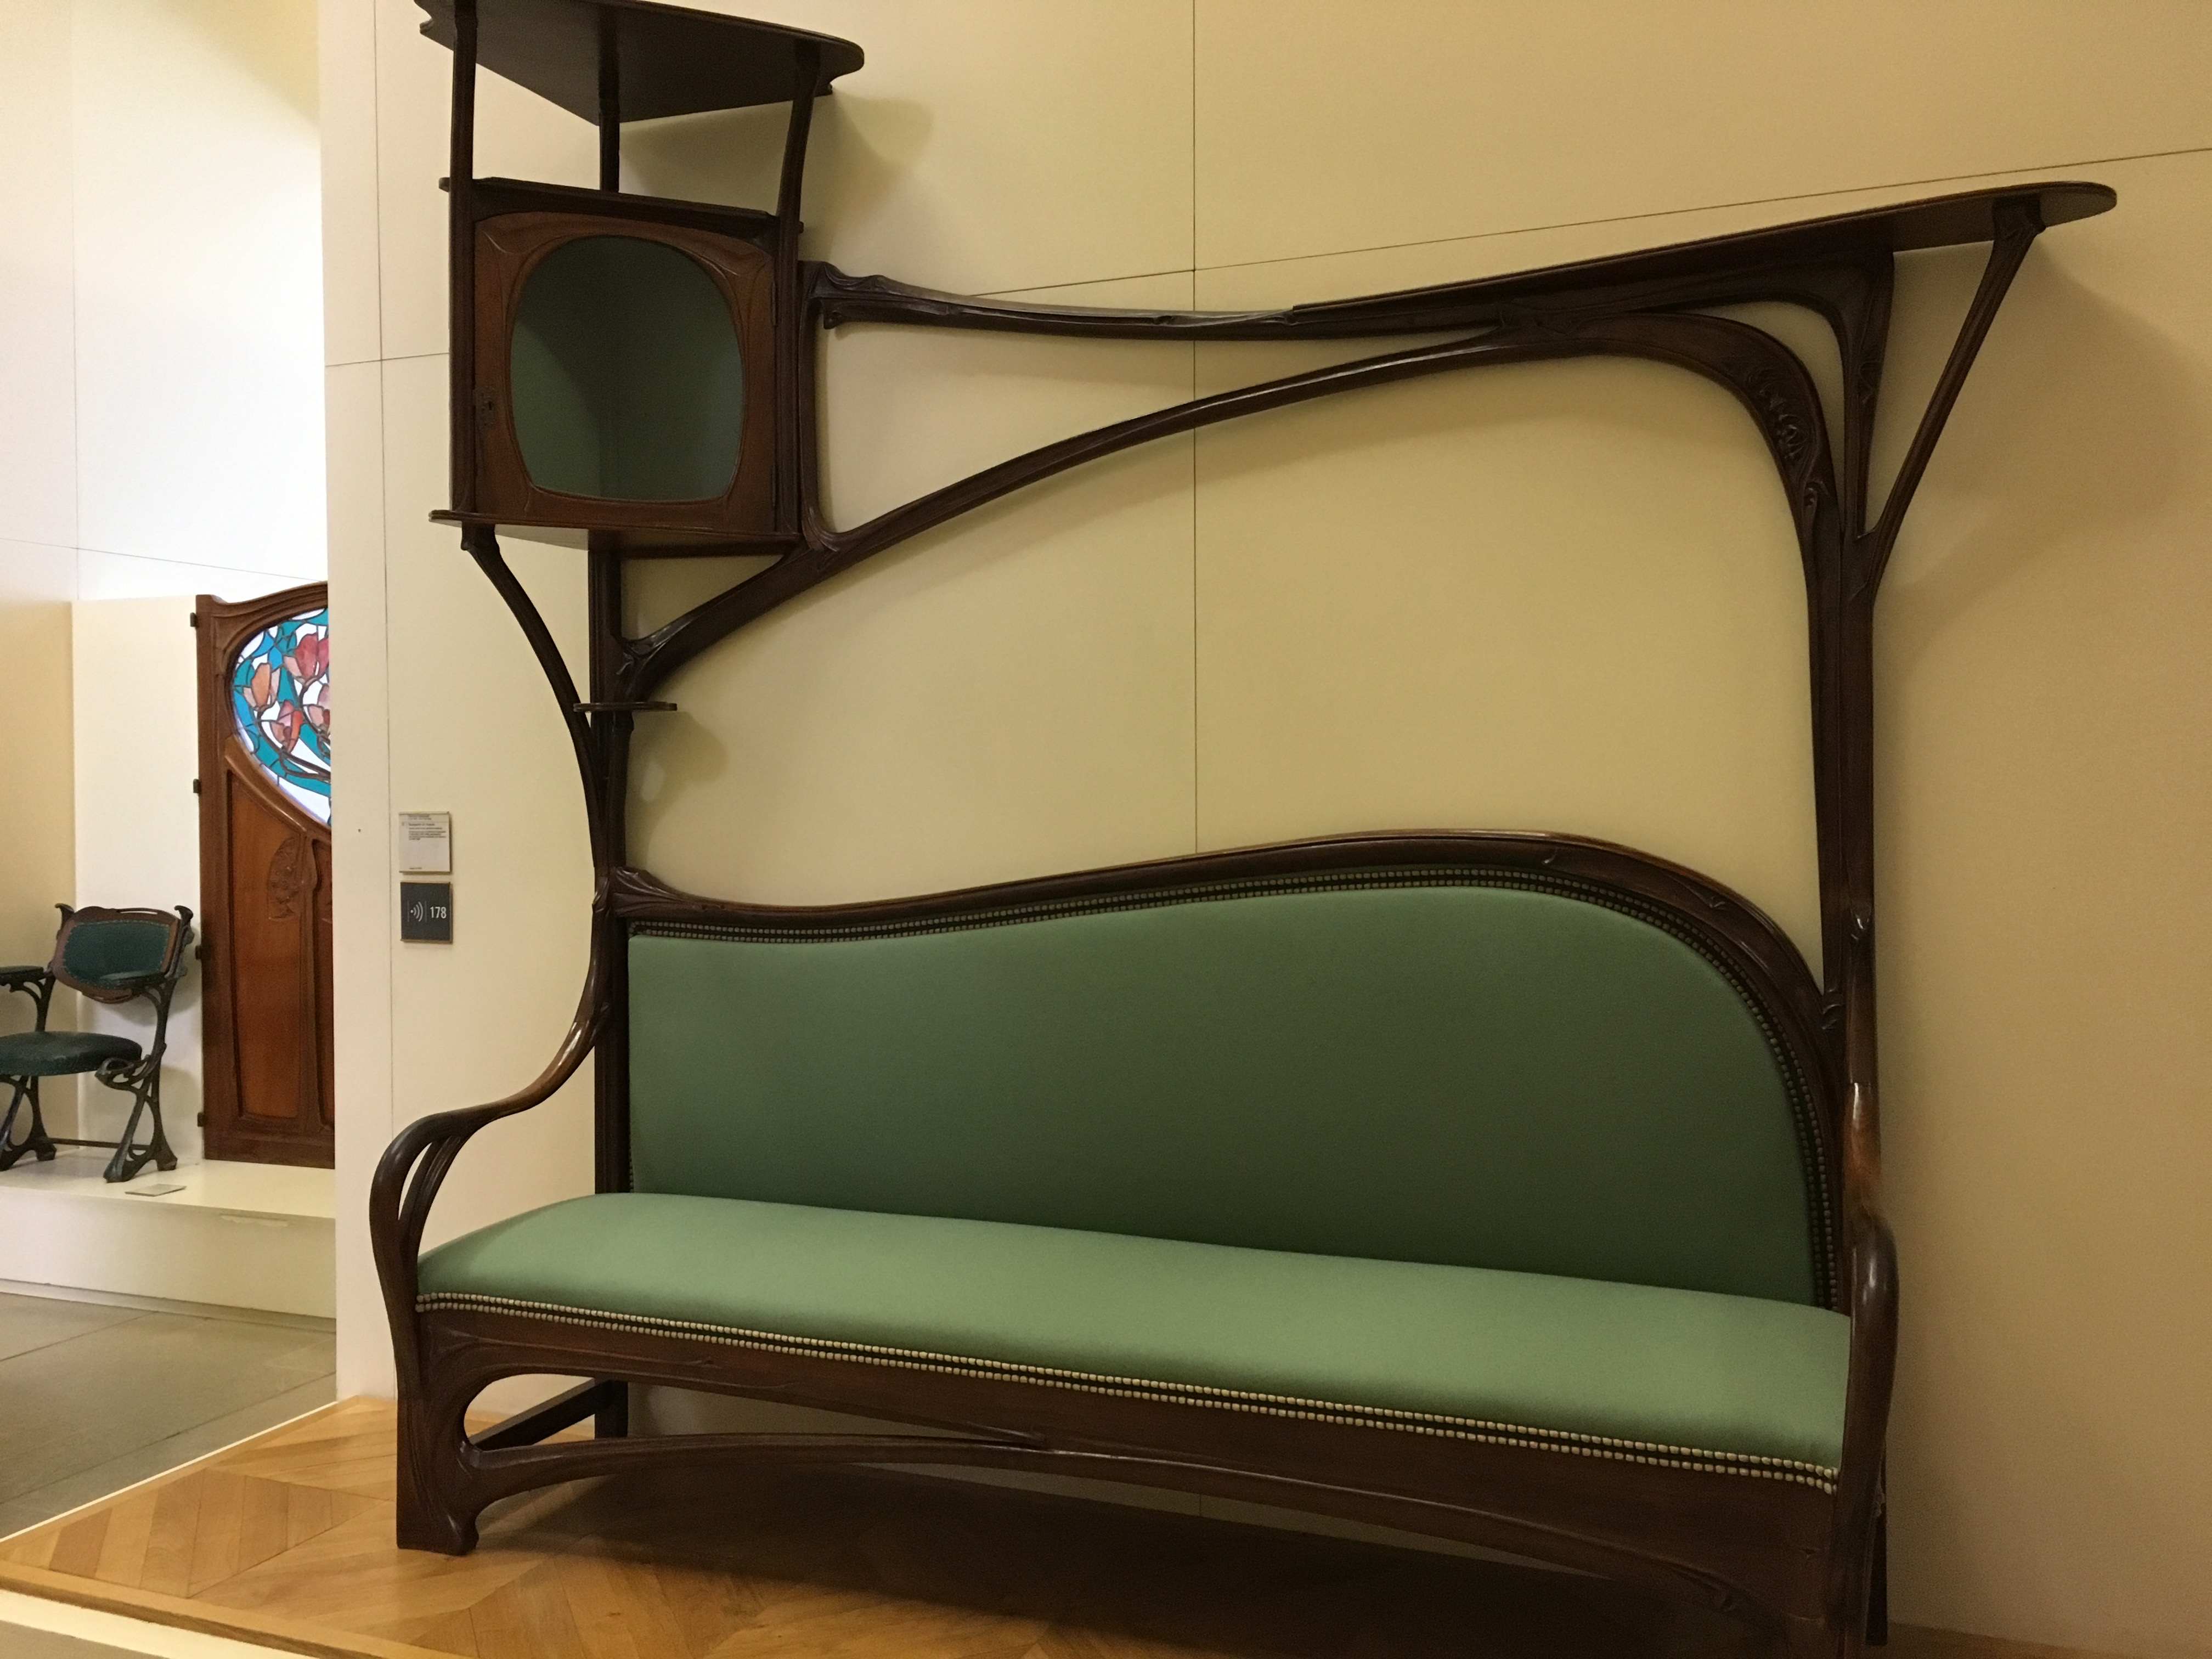 Art Nouveau Is Associated Primarily With The Decorative Arts, Furniture,  And Interiors Although The Art Of Artists Such As Aforementioned Toulouse  Lautrec ...